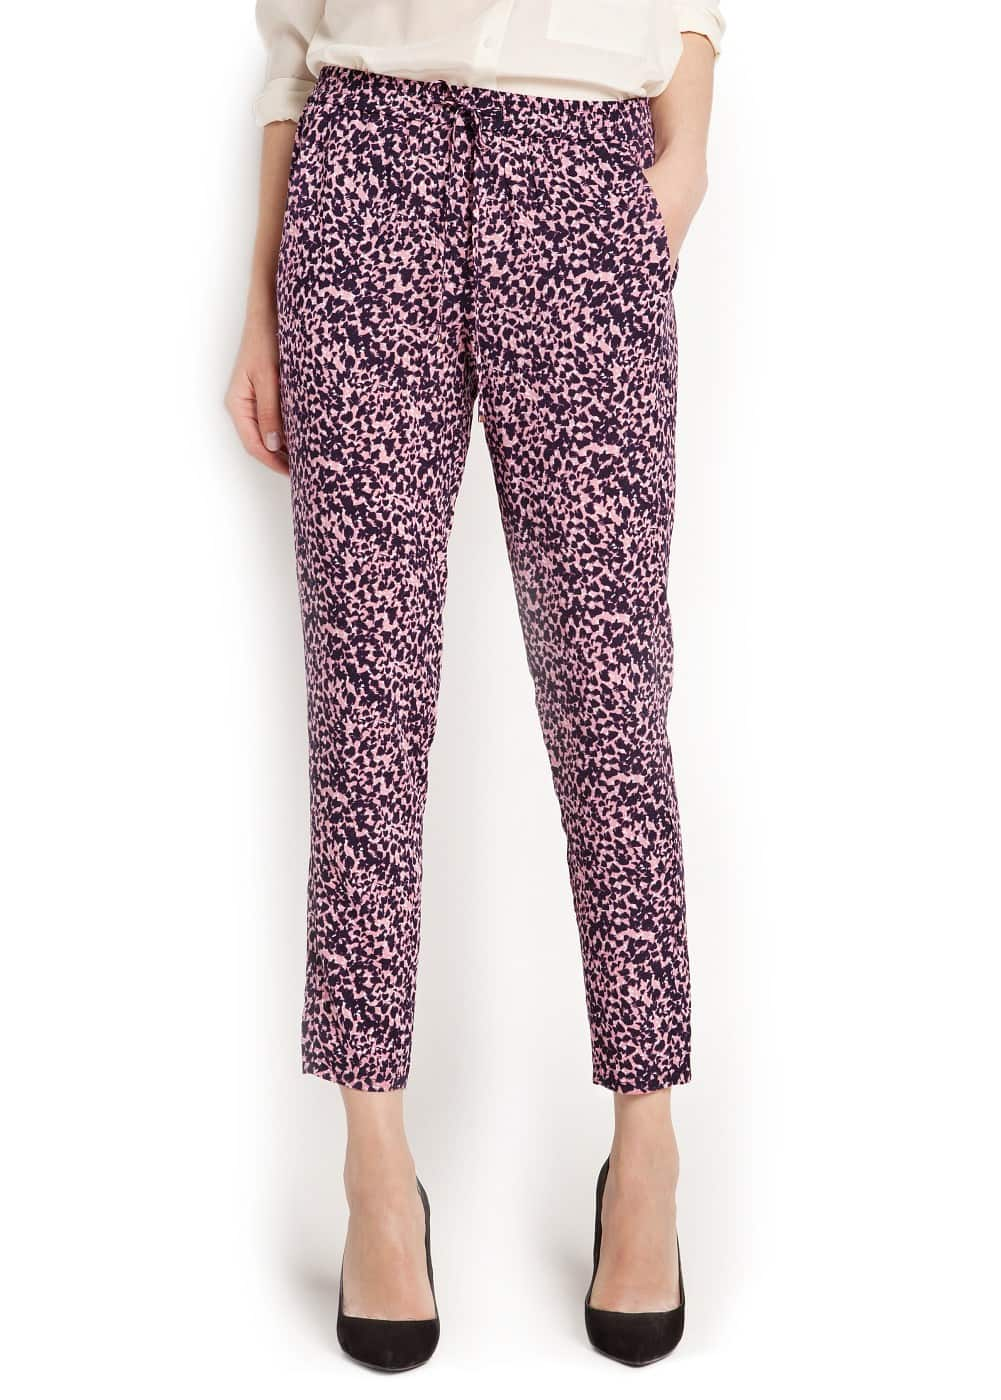 Printed flowy trousers